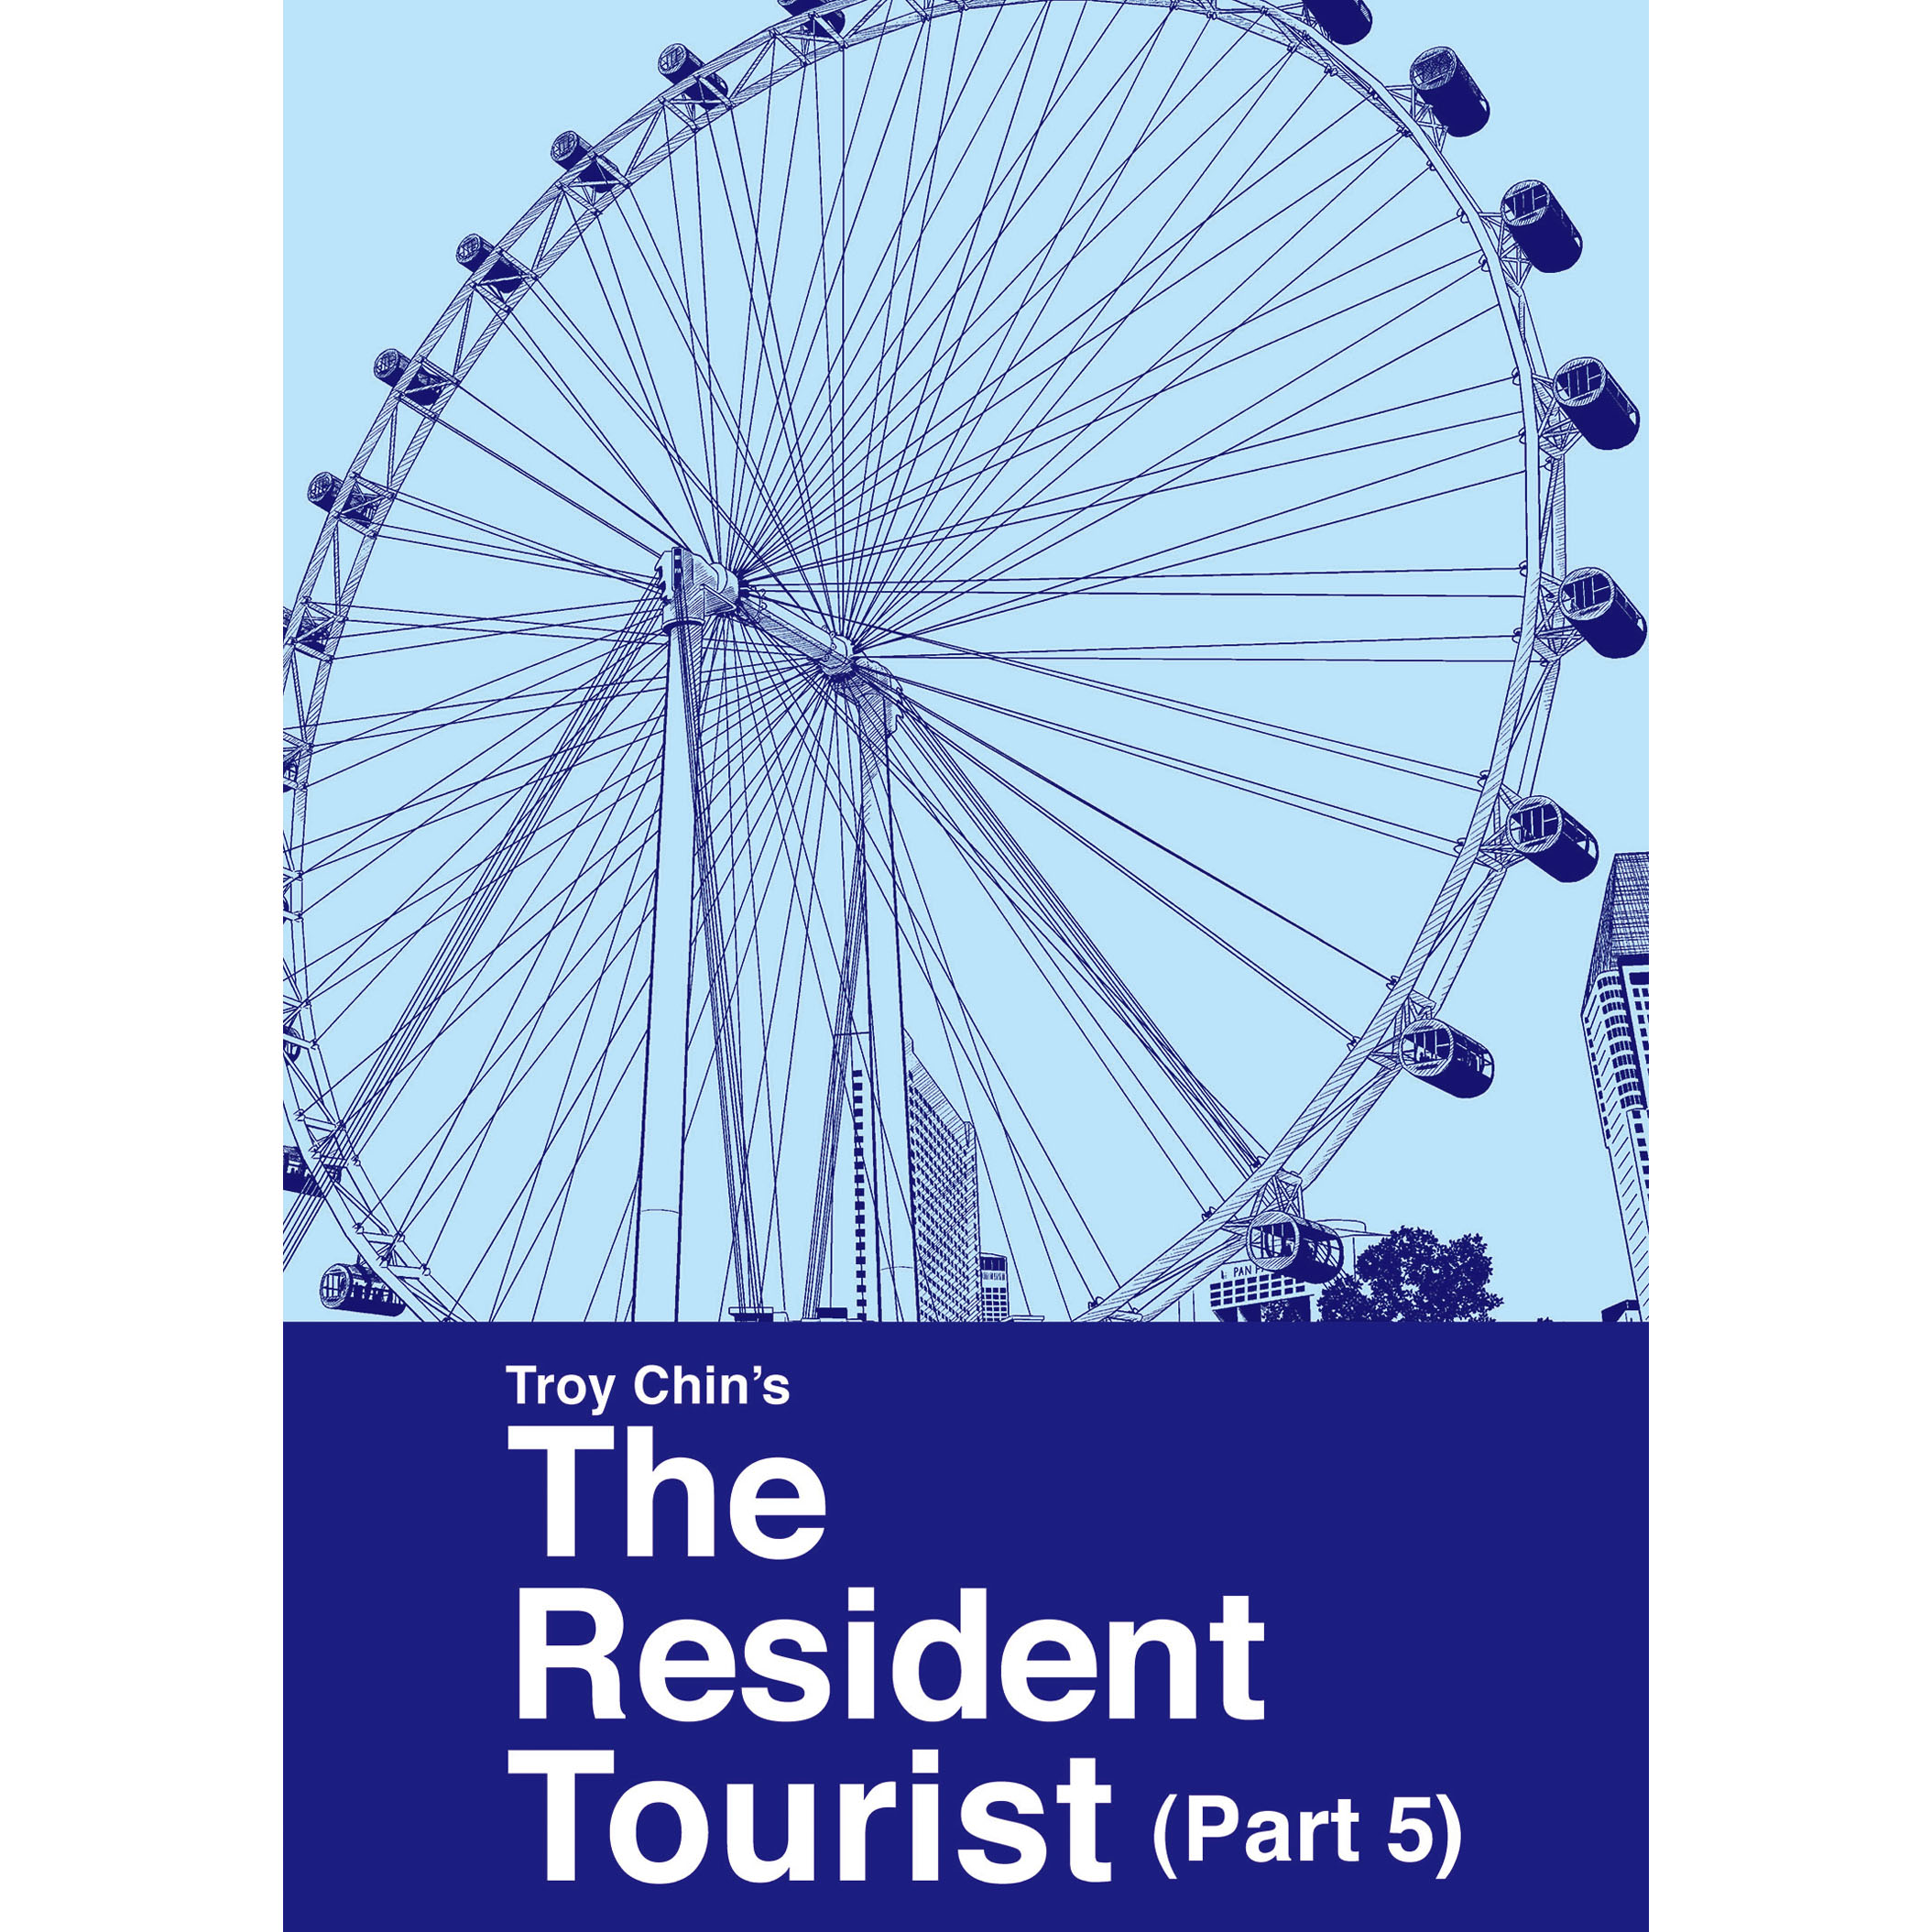 Review: The Resident Tourist vol. 5